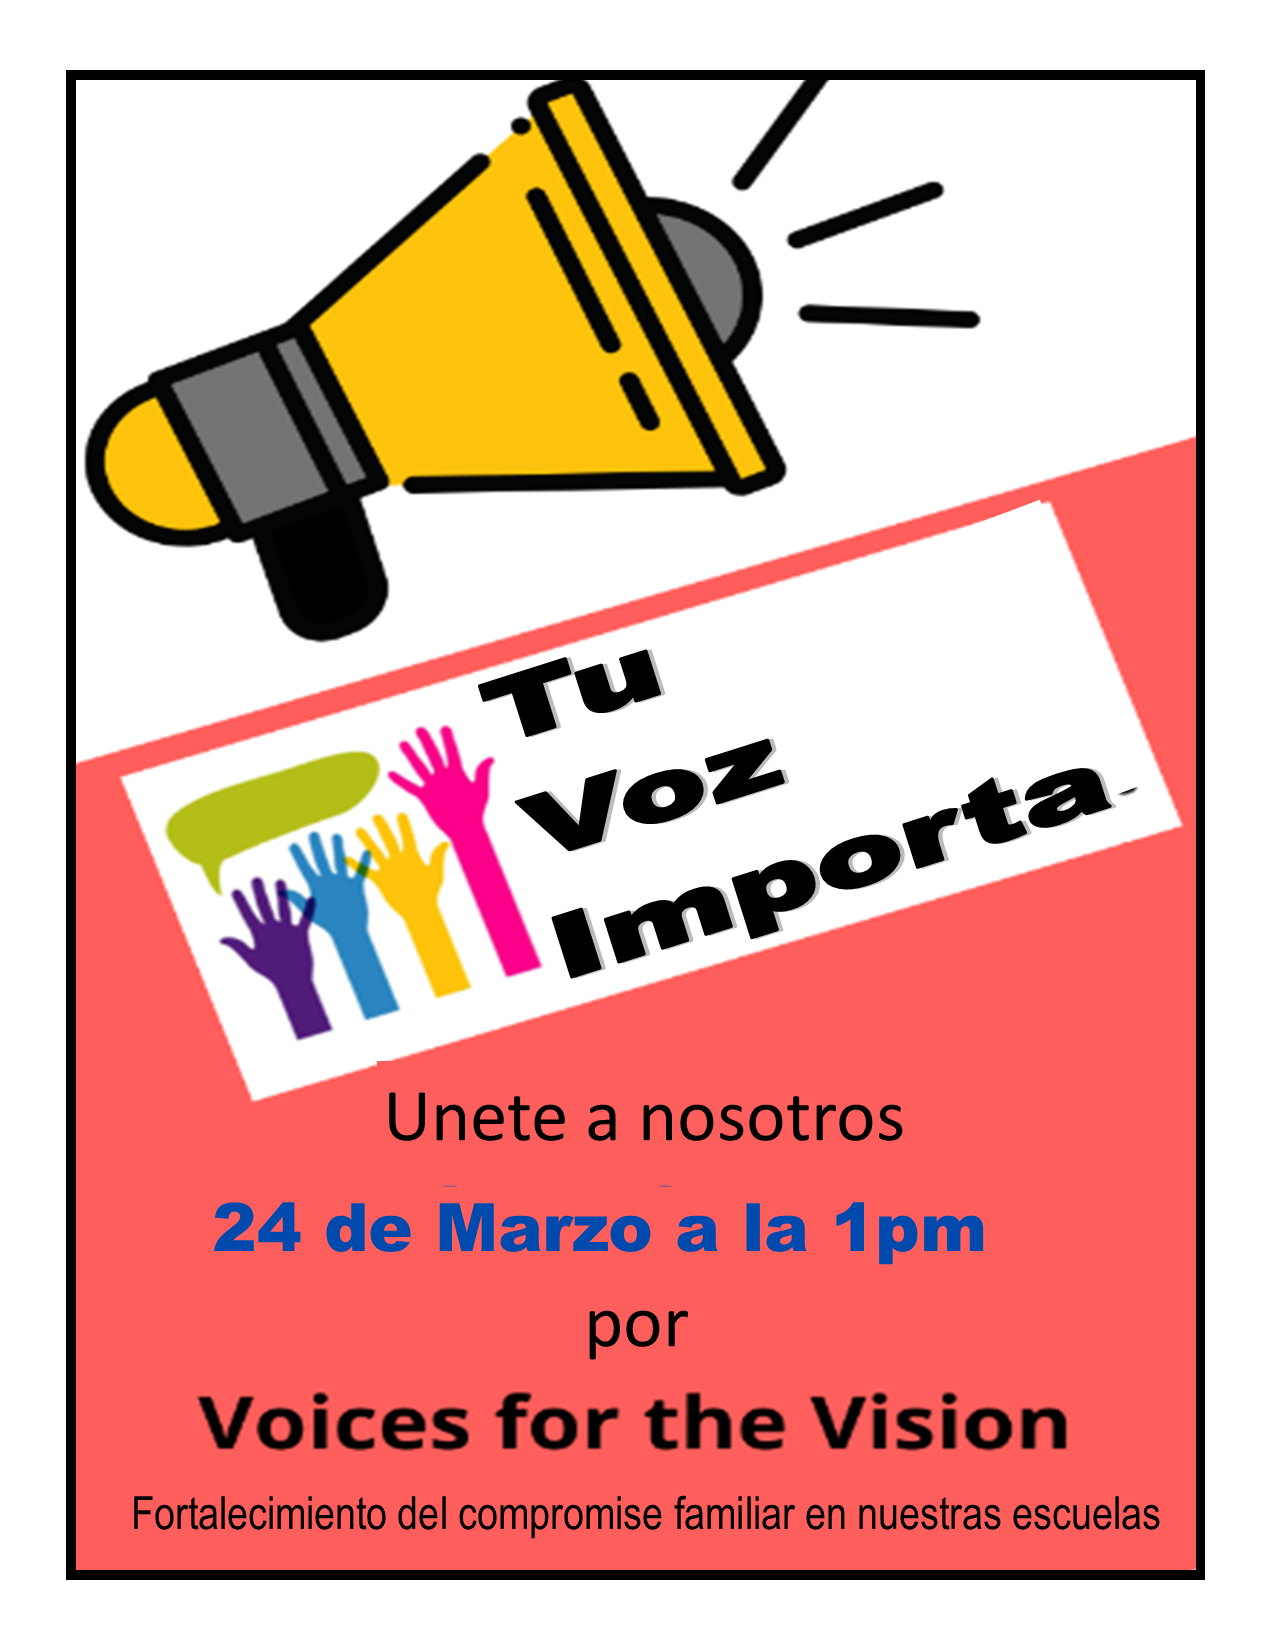 Spanish version of Your Voice Matters flyer